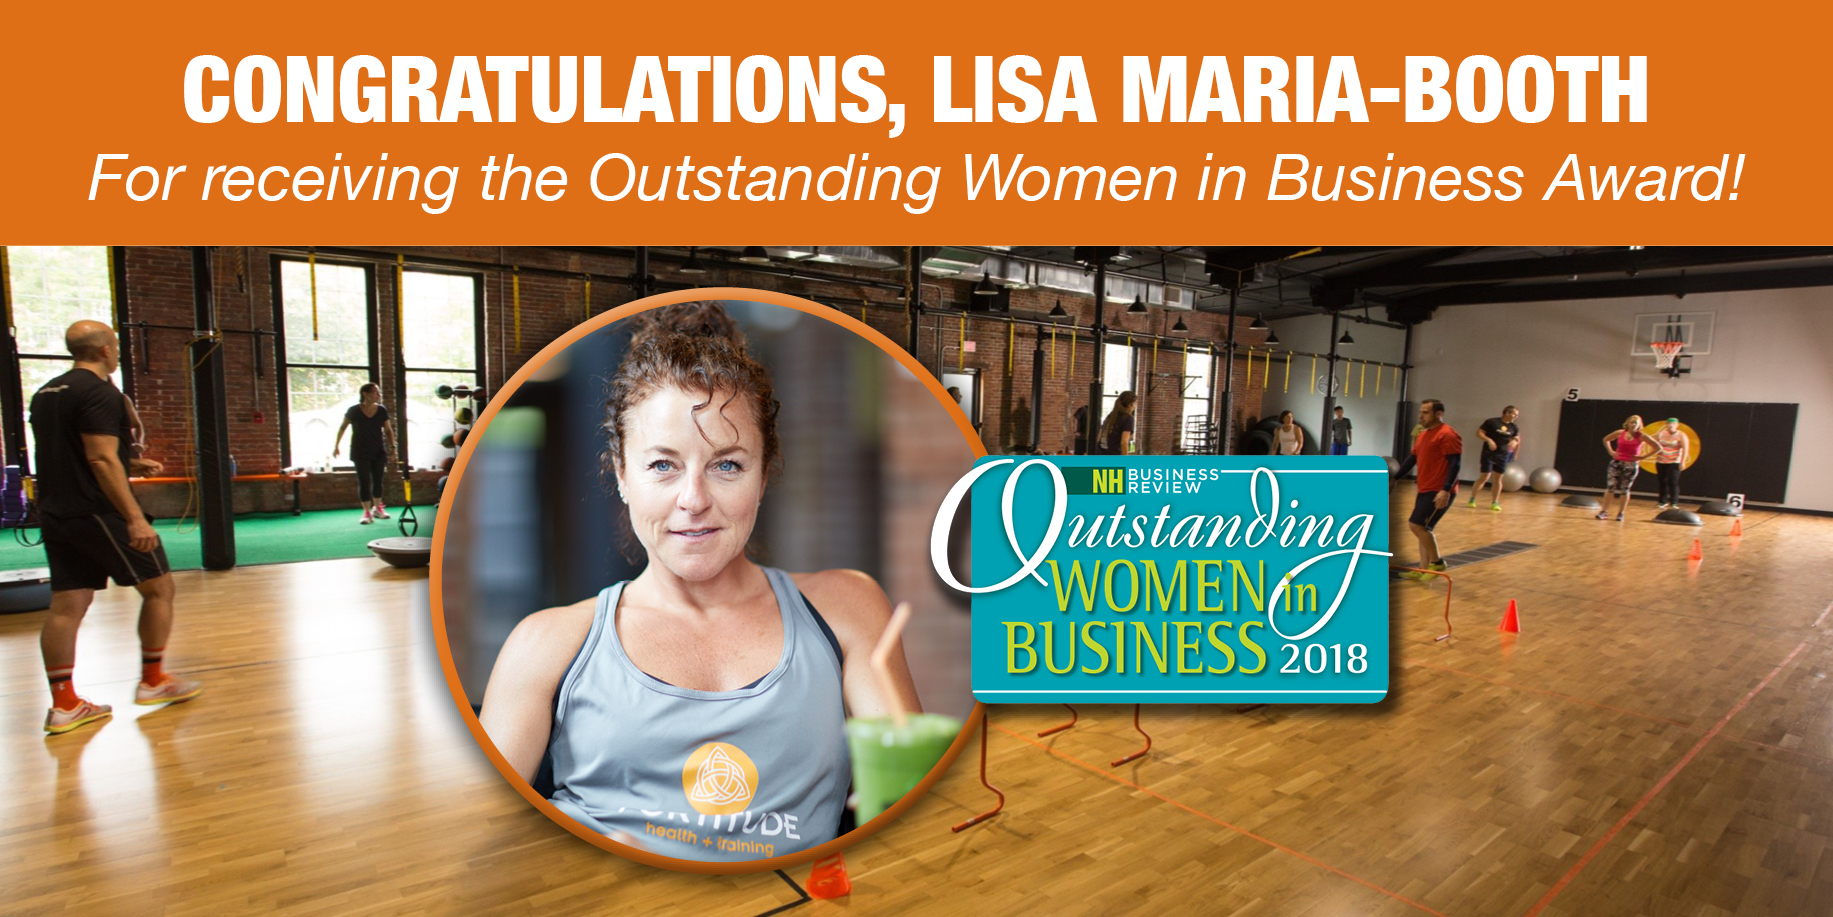 Lisa Maria-Booth receives Outstanding Women in Business Award 2018